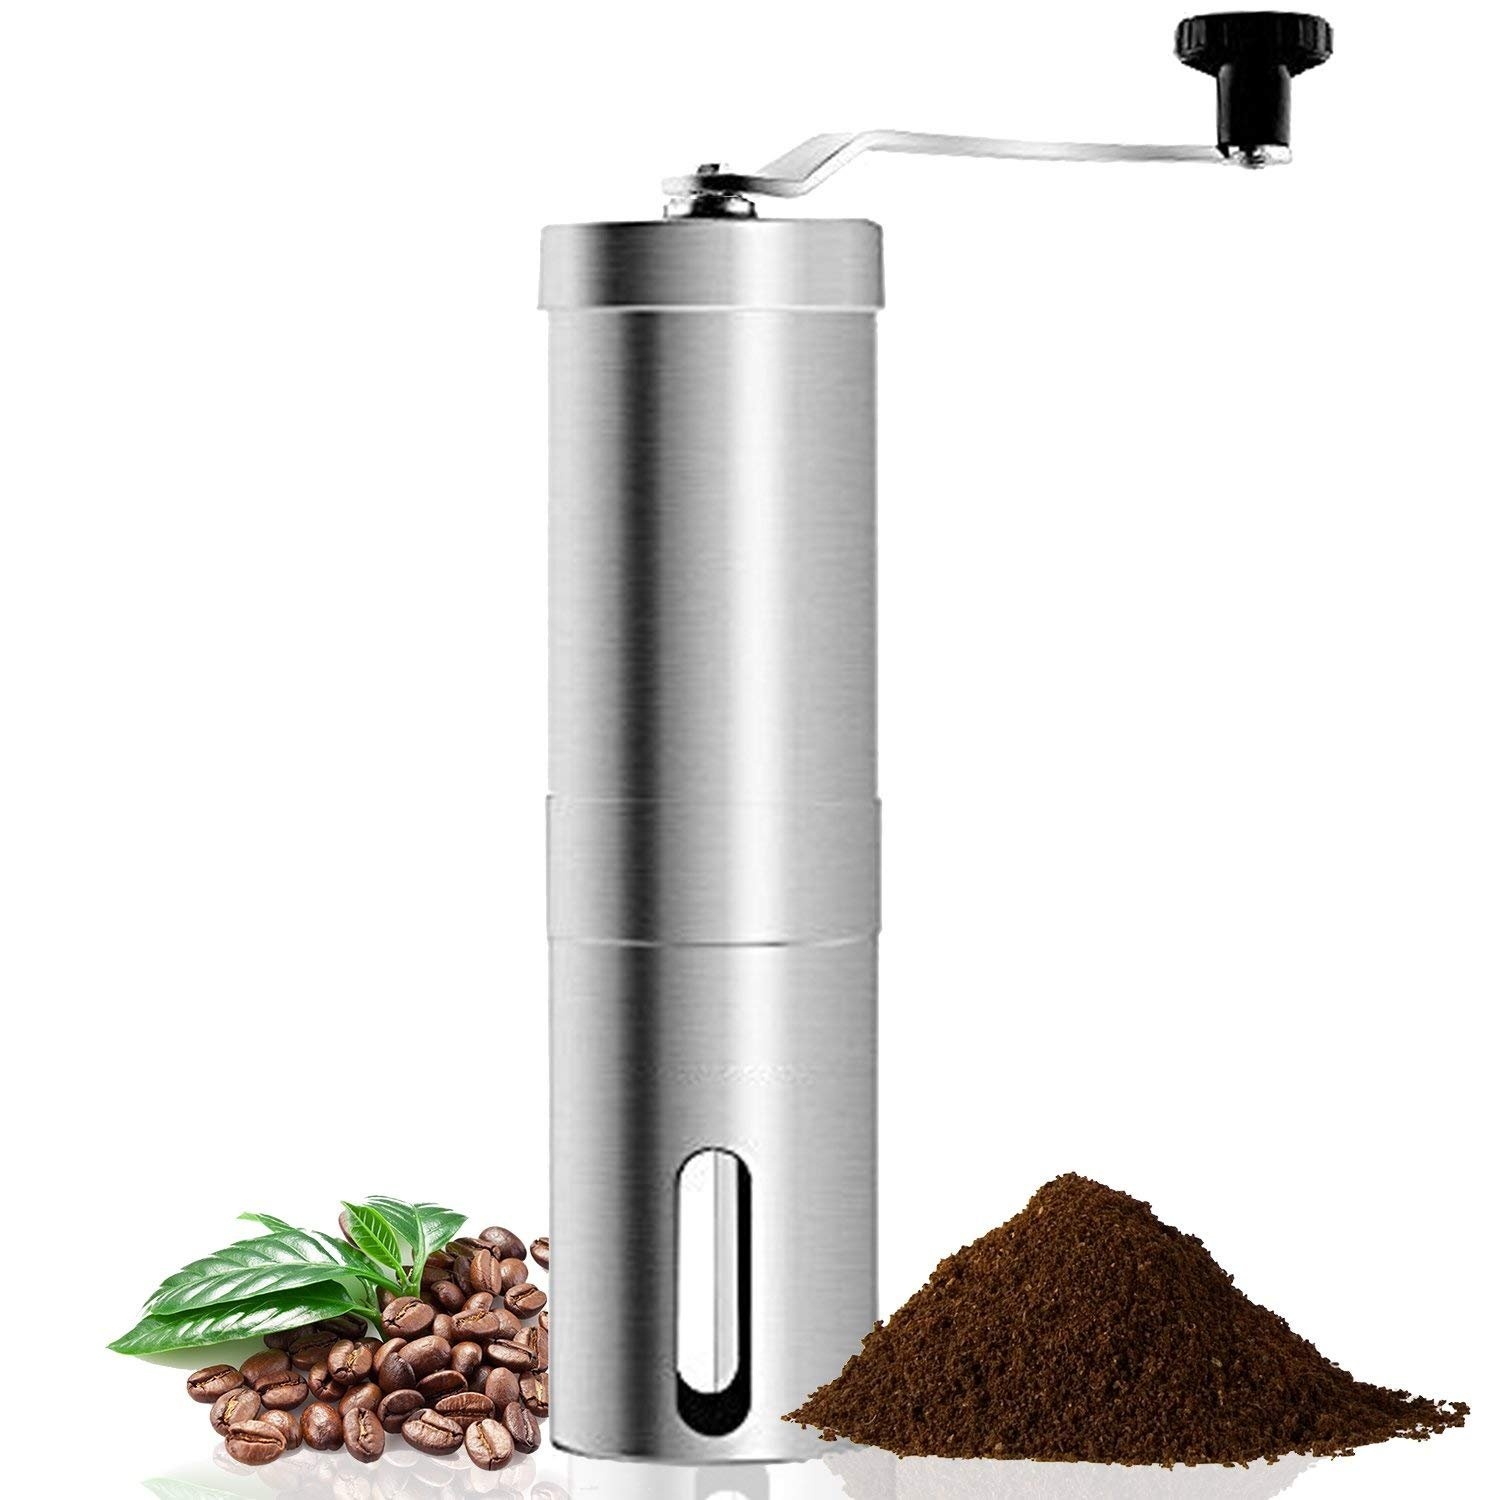 Coffee Grinder Burr Manual Coffee-Grinder Aessdcan